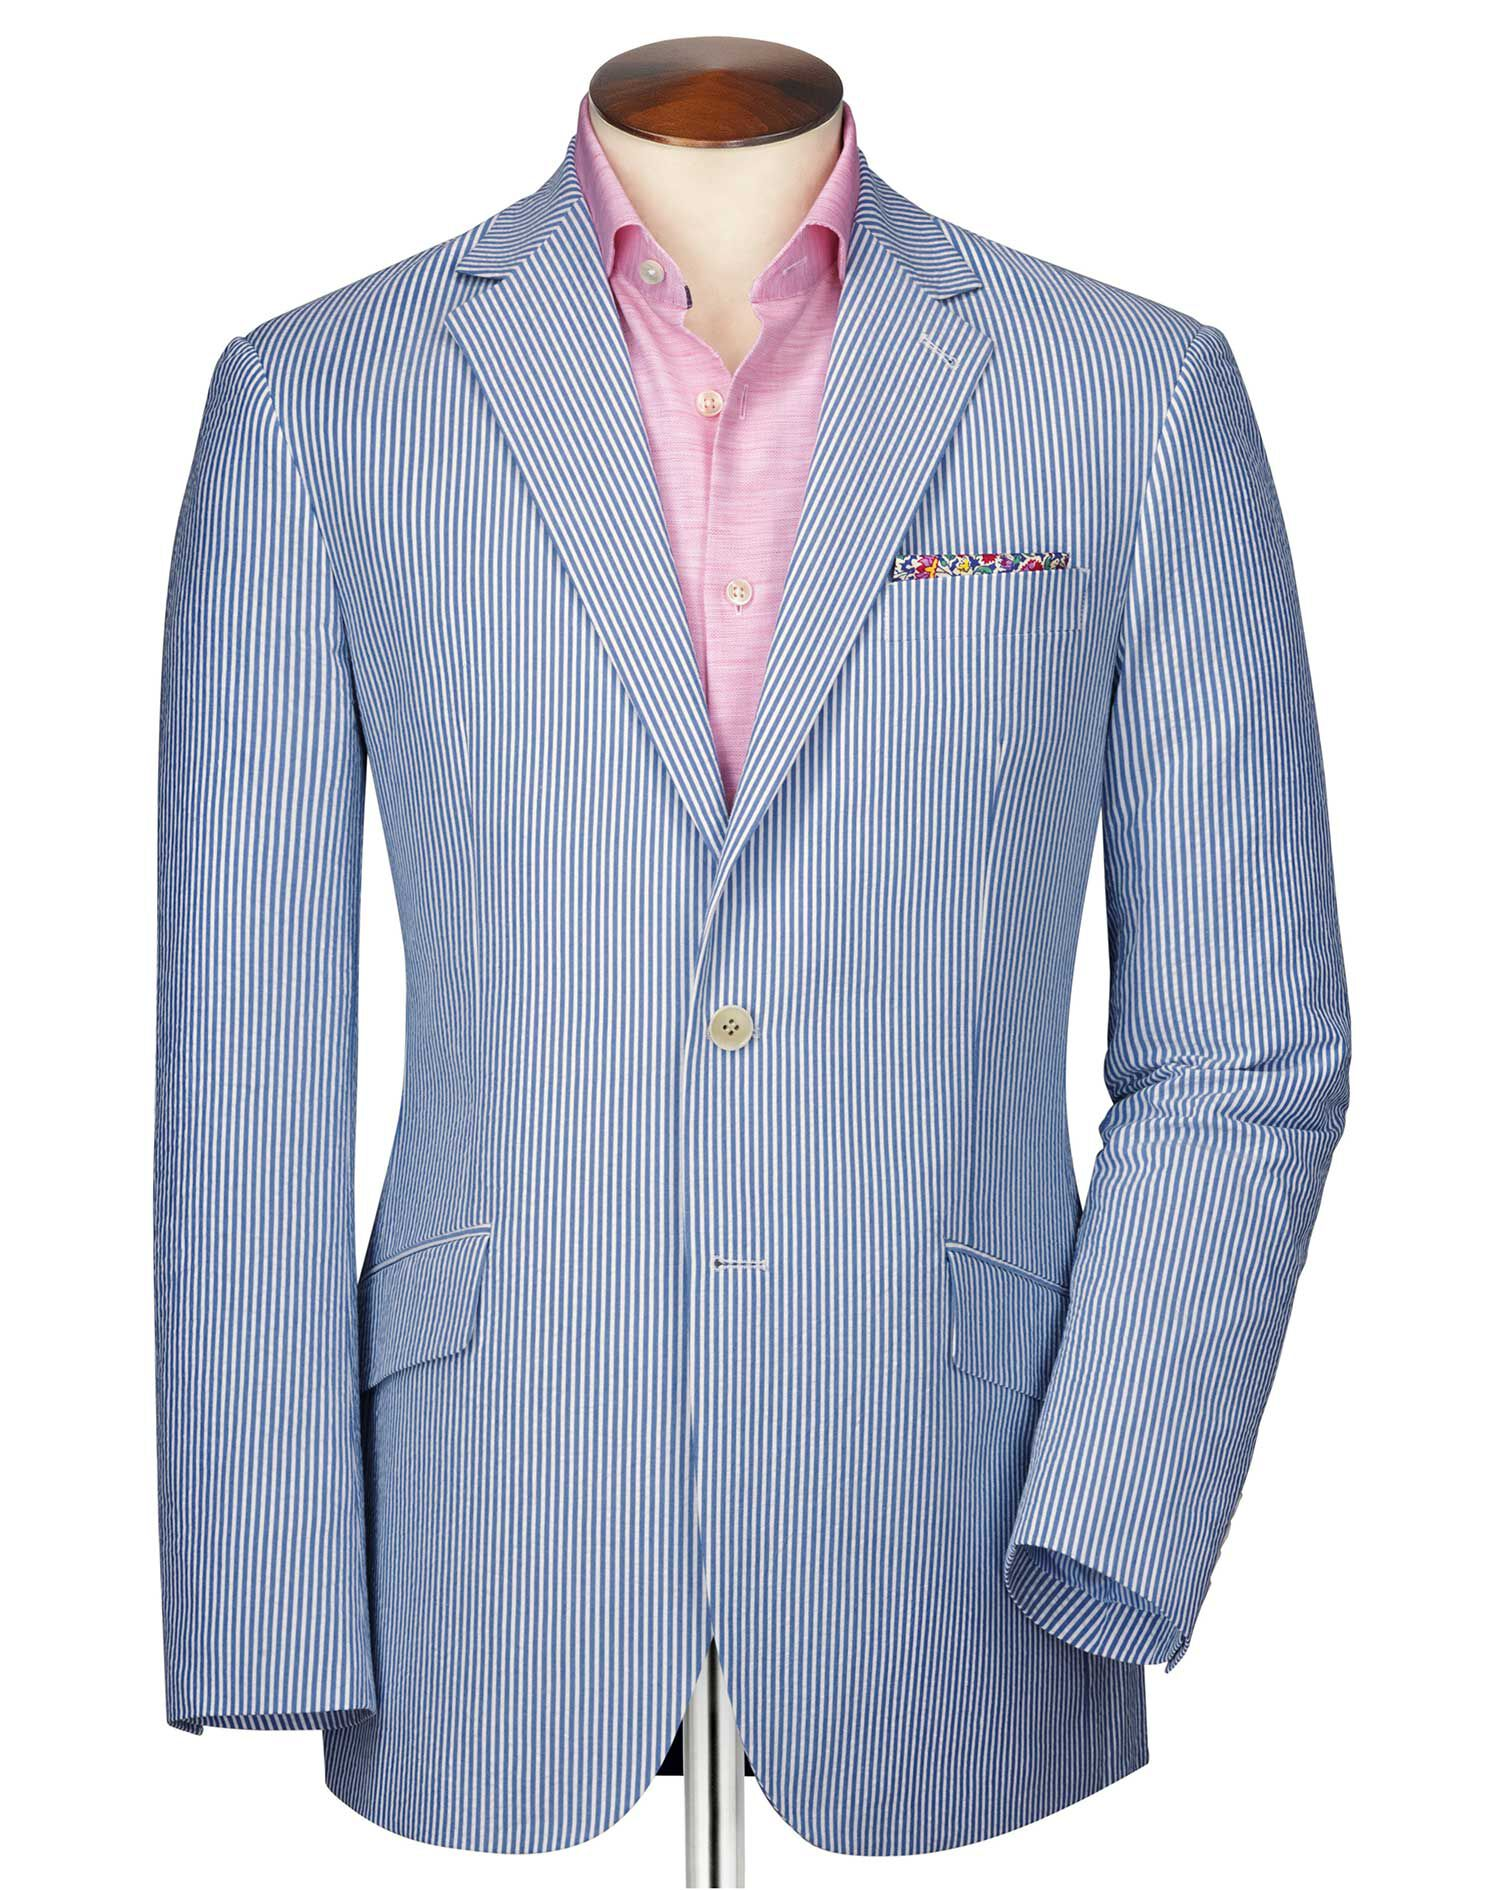 Classic Fit Blue and White Striped Seersucker Cotton Jacket Size 40 Regular by Charles Tyrwhitt